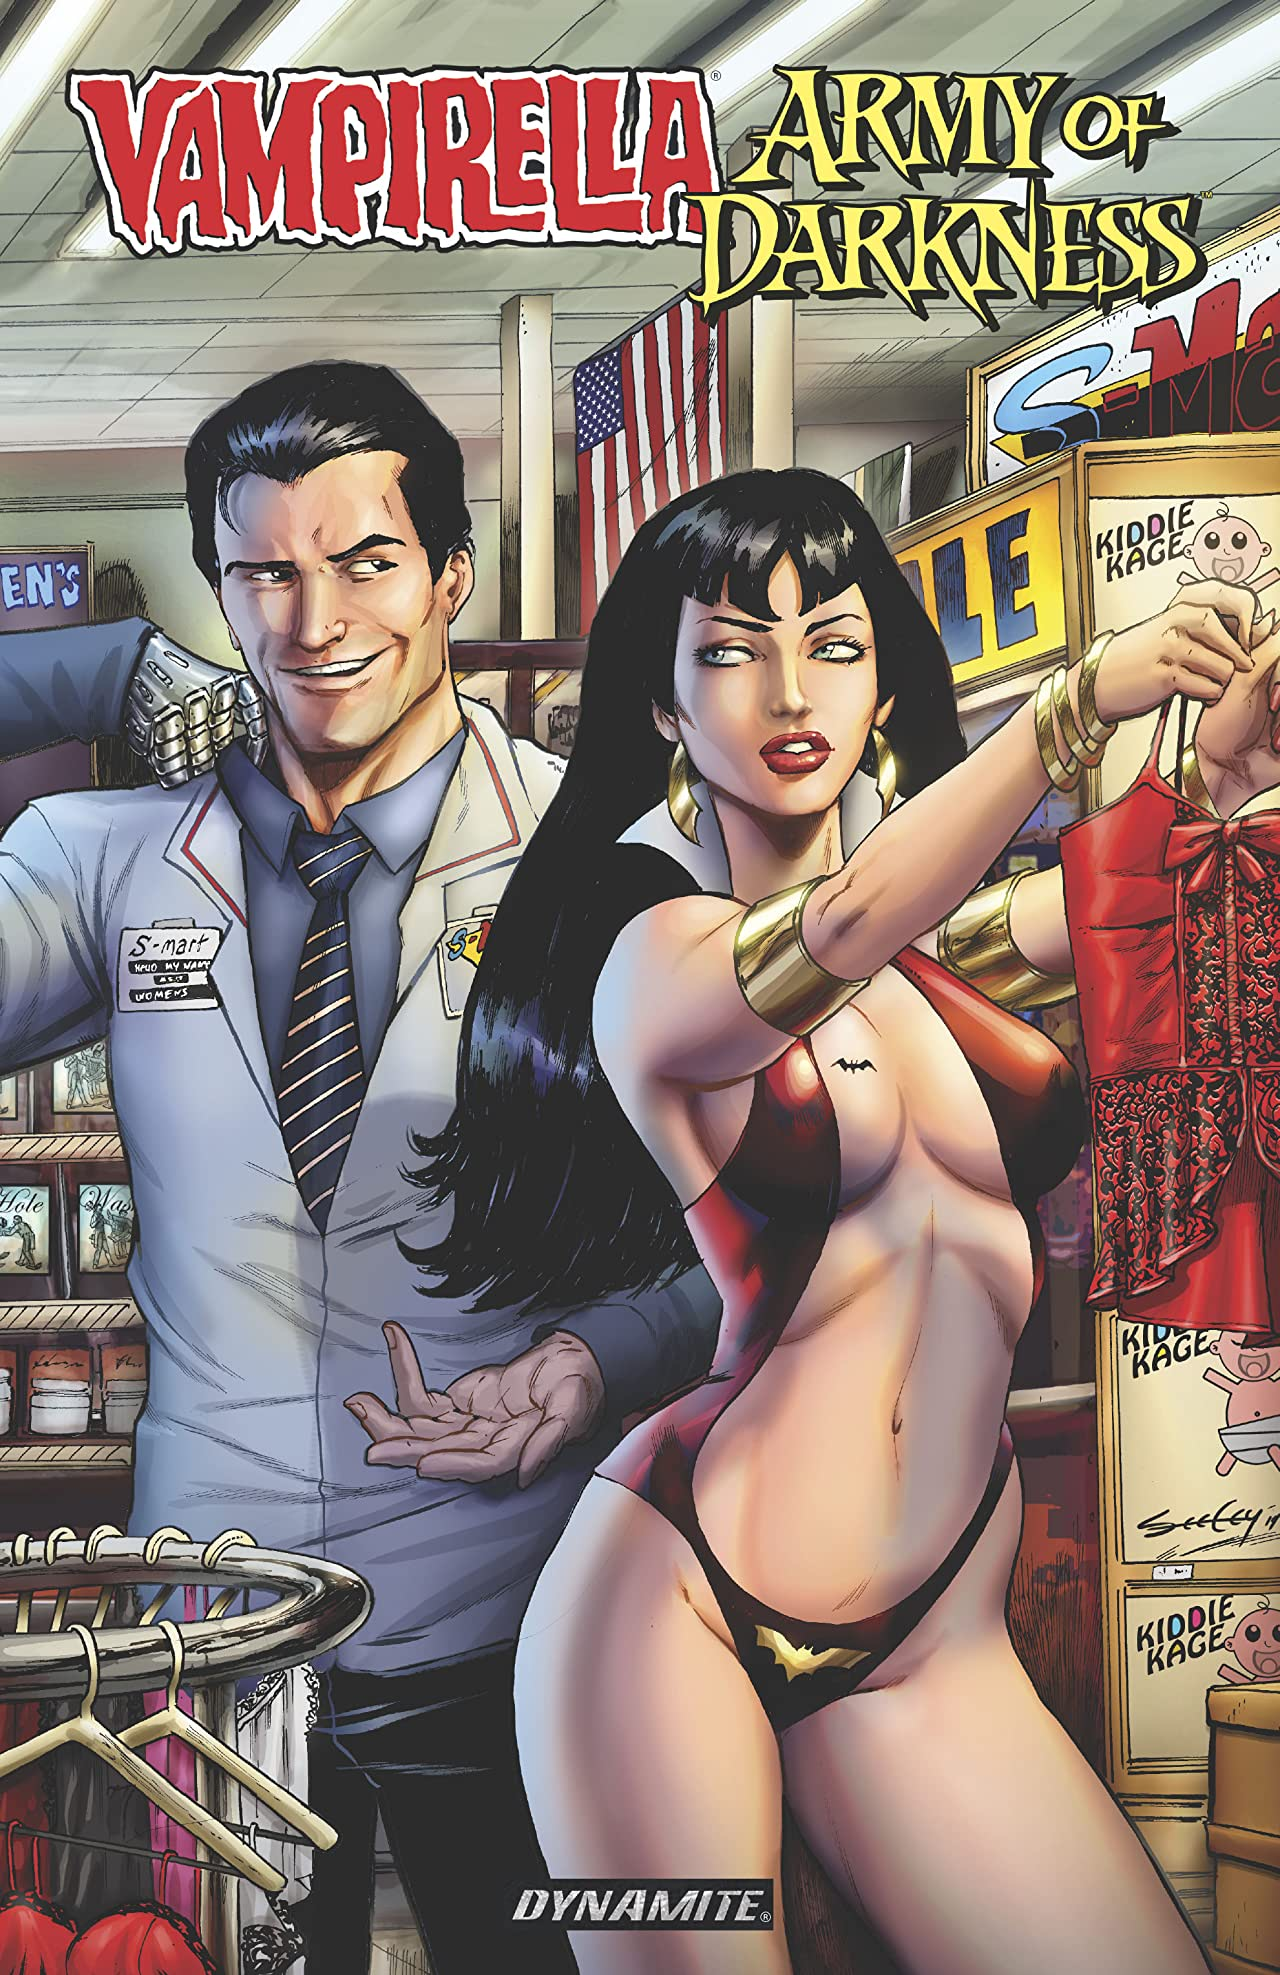 Vampirella/Army Of Darkness